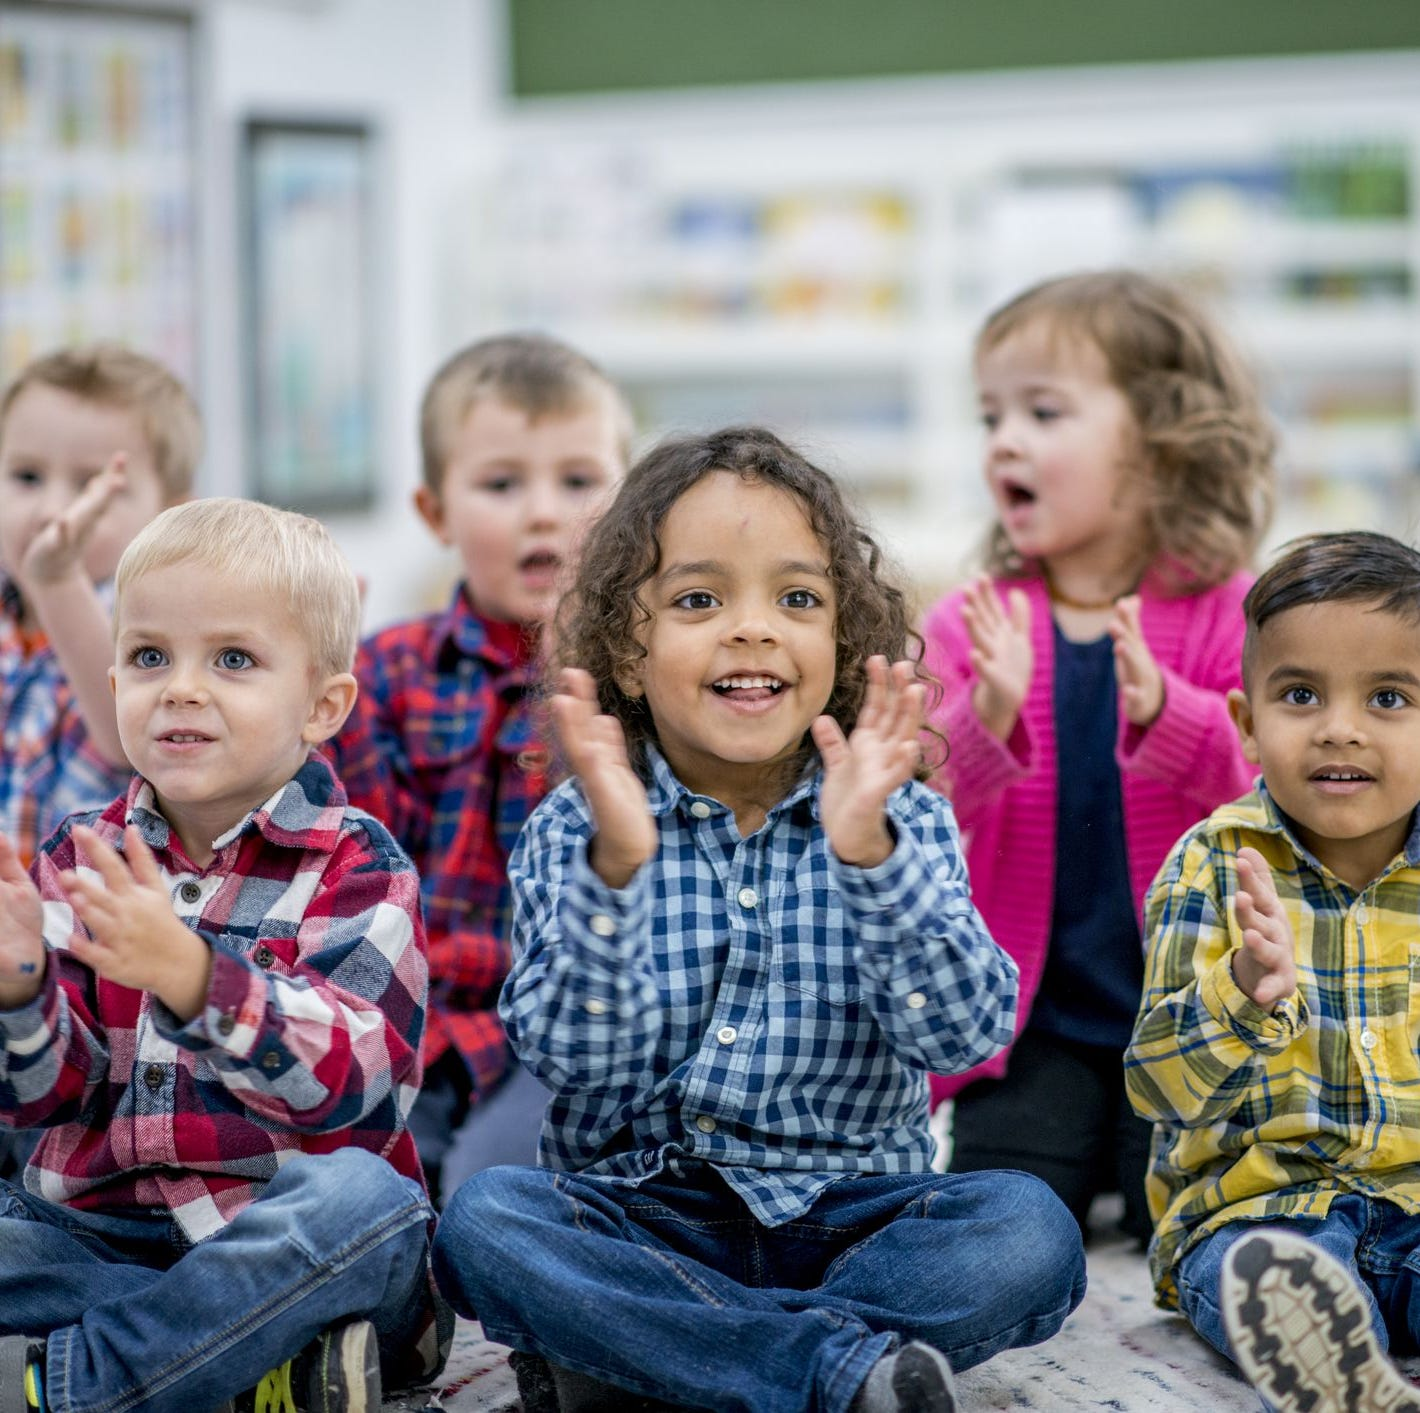 Children who attended daycare before the age of 3 were better behaved than children who were cared for by friends and family, a recently published study found.